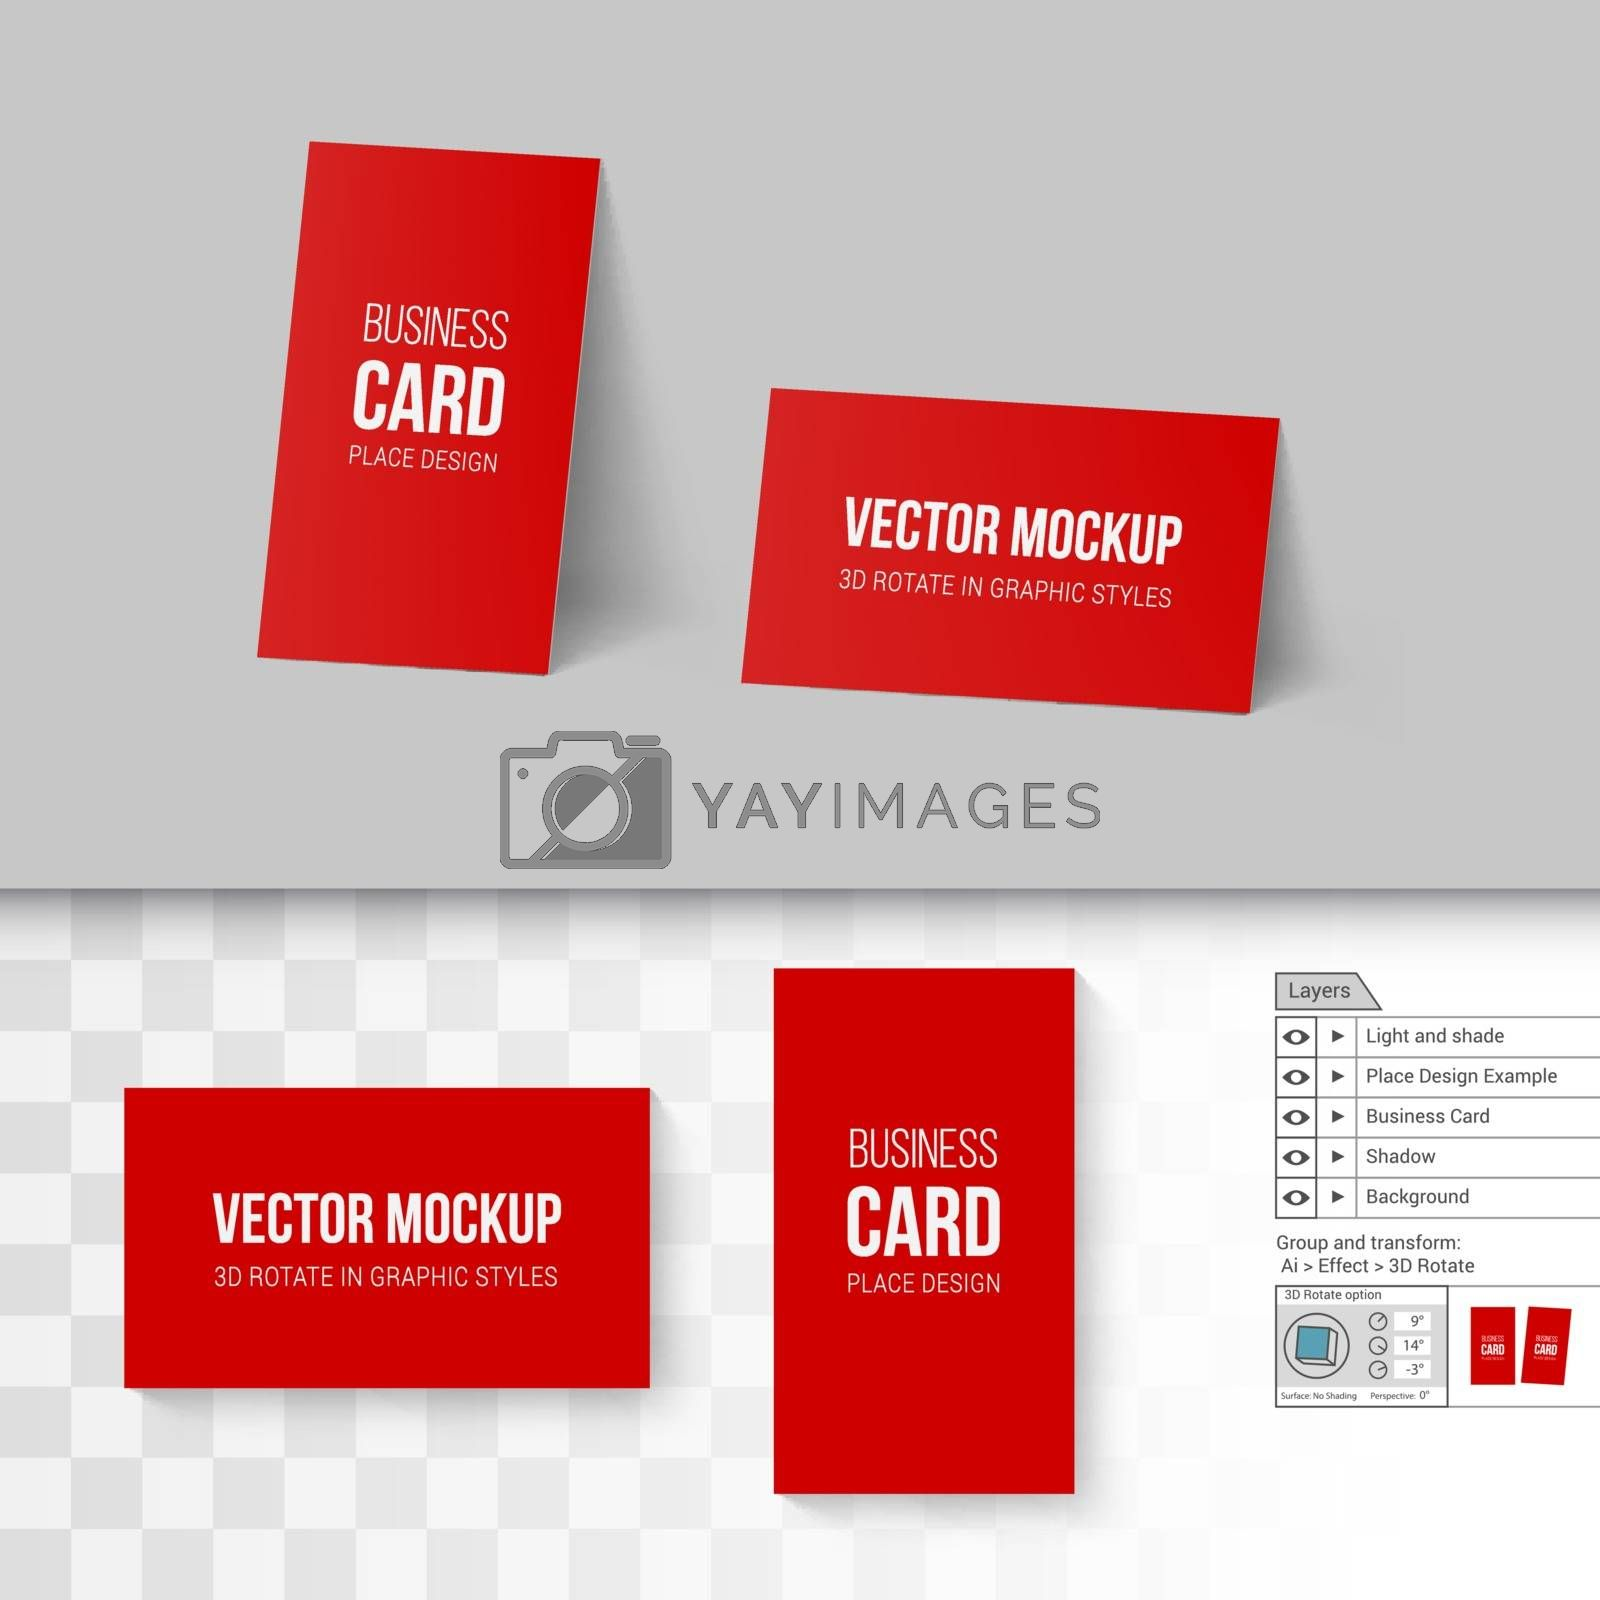 Red Business Cards Template. Corporate Identity. Branding Mock Up with 3D Rotate Options on Gray and Transparent Background